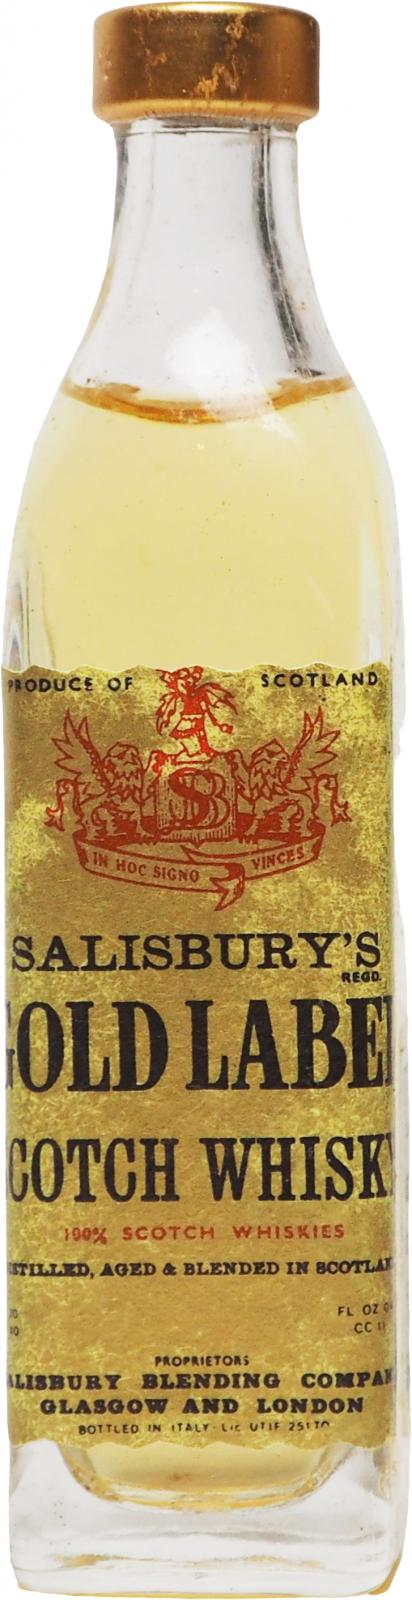 Salisbury's Gold Label